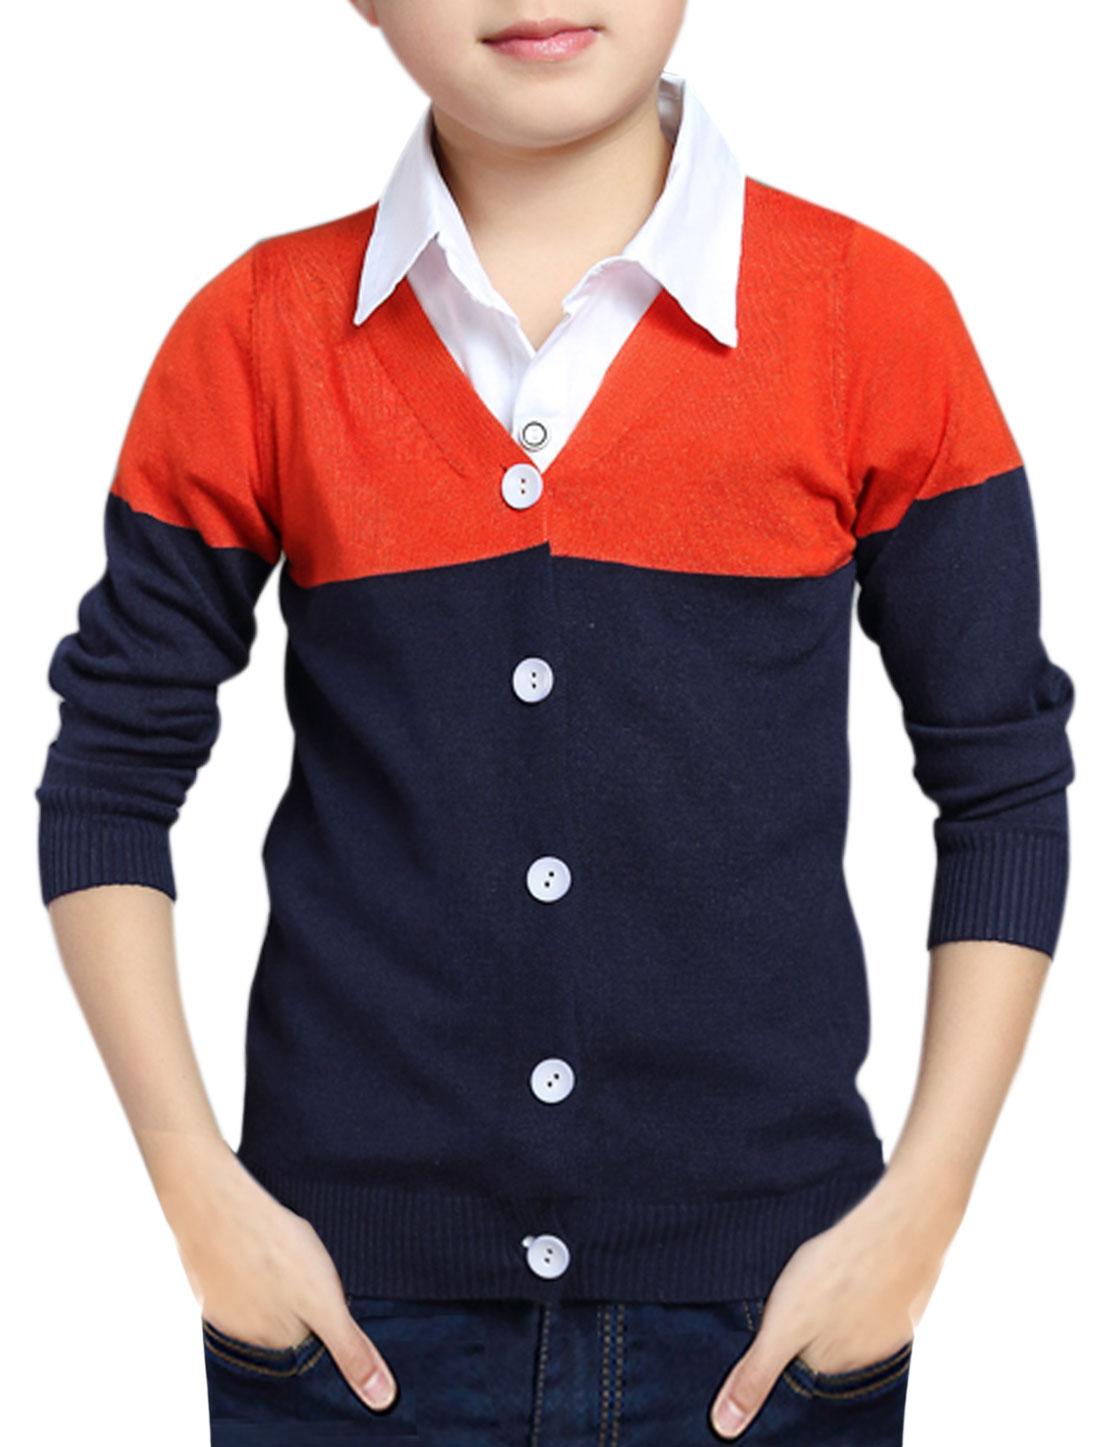 Boys Color Block Slim Fit Knit Cardigan Red Gray 7X